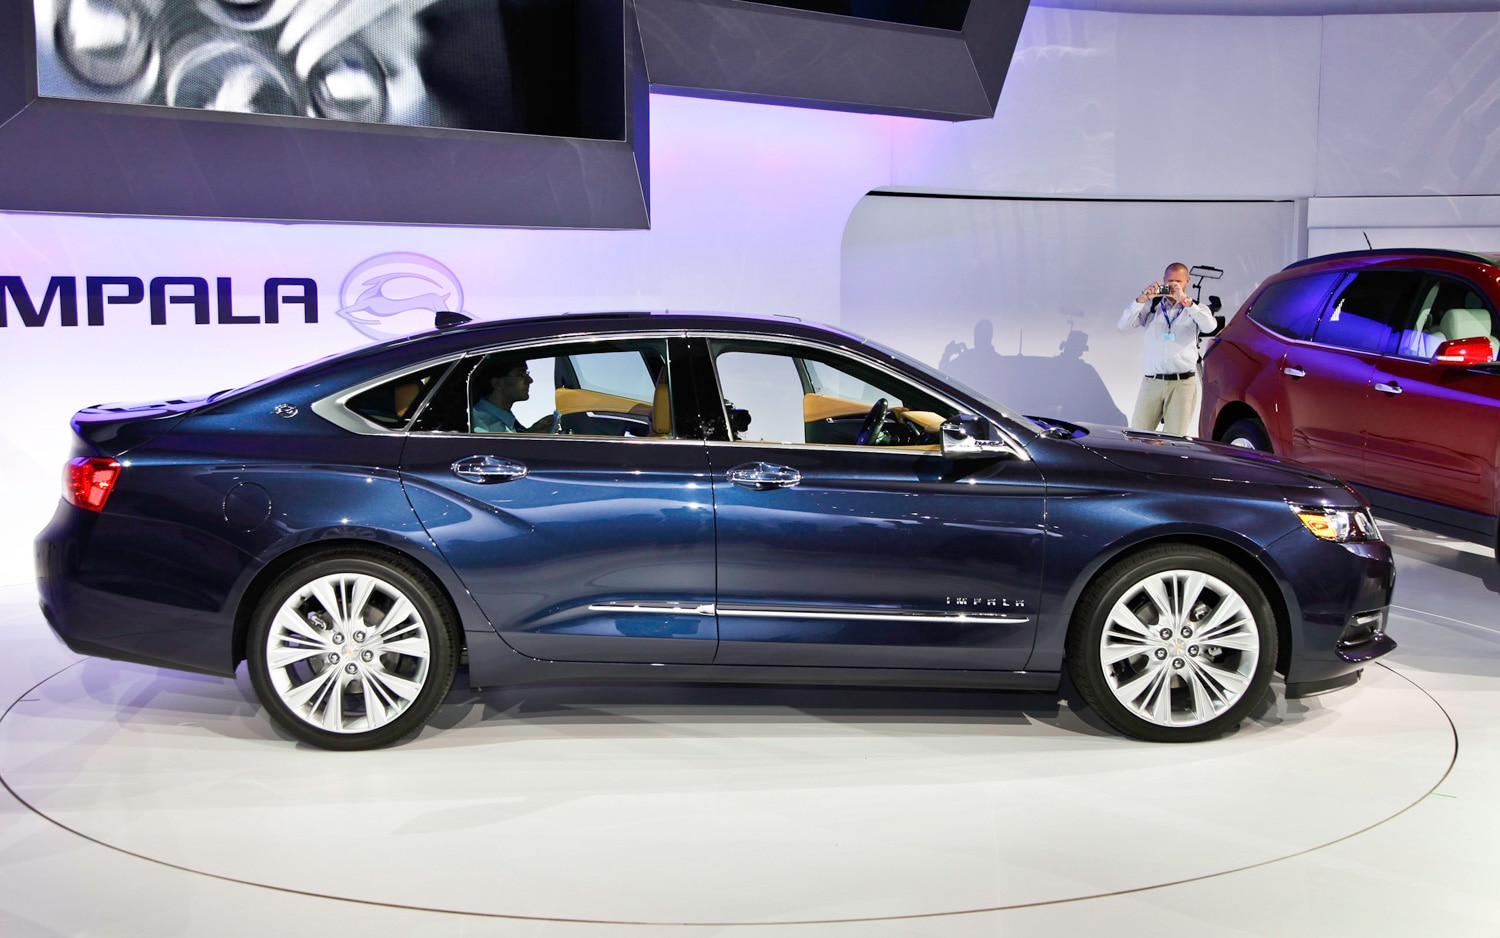 First Look: 2014 Chevrolet Impala - Automobile Magazine